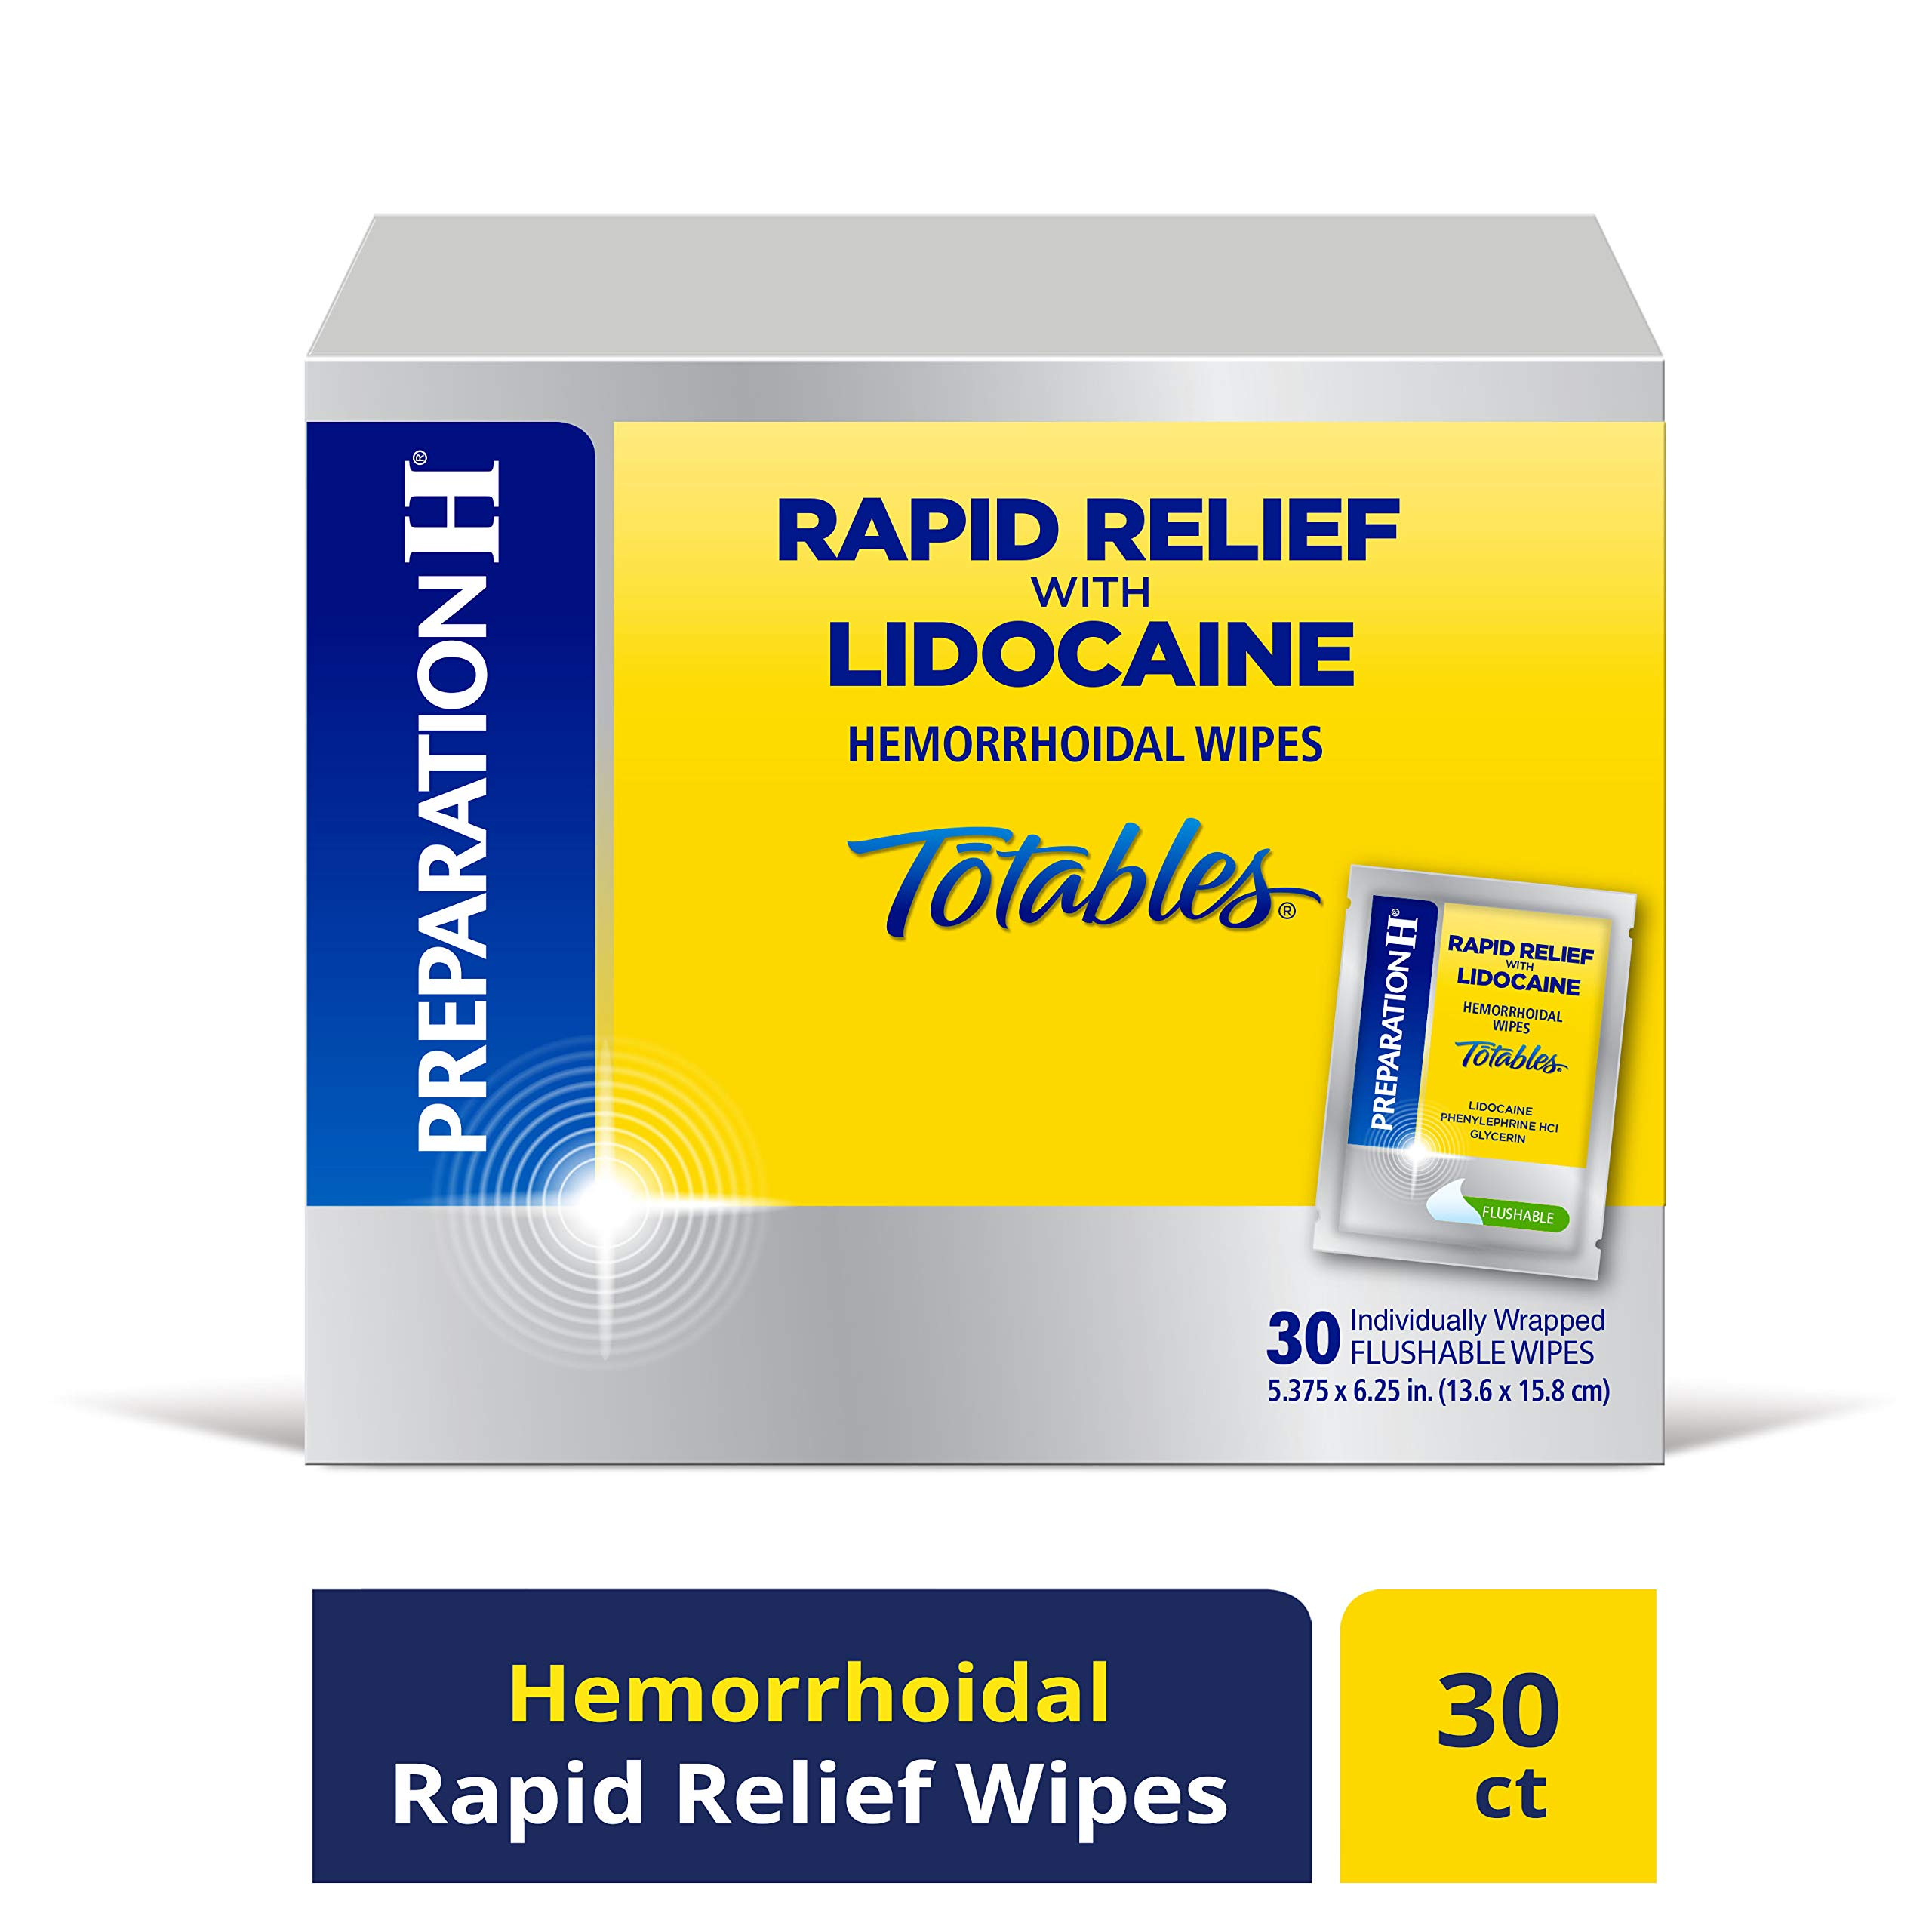 PREPARATION H Rapid Relief with Lidocaine Hemorrhoid Symptom Treatment Flushable Wipes, Numbing Relief for Pain, Burning & Itching, Reduces Swelling, 30 Count Box by Preparation H